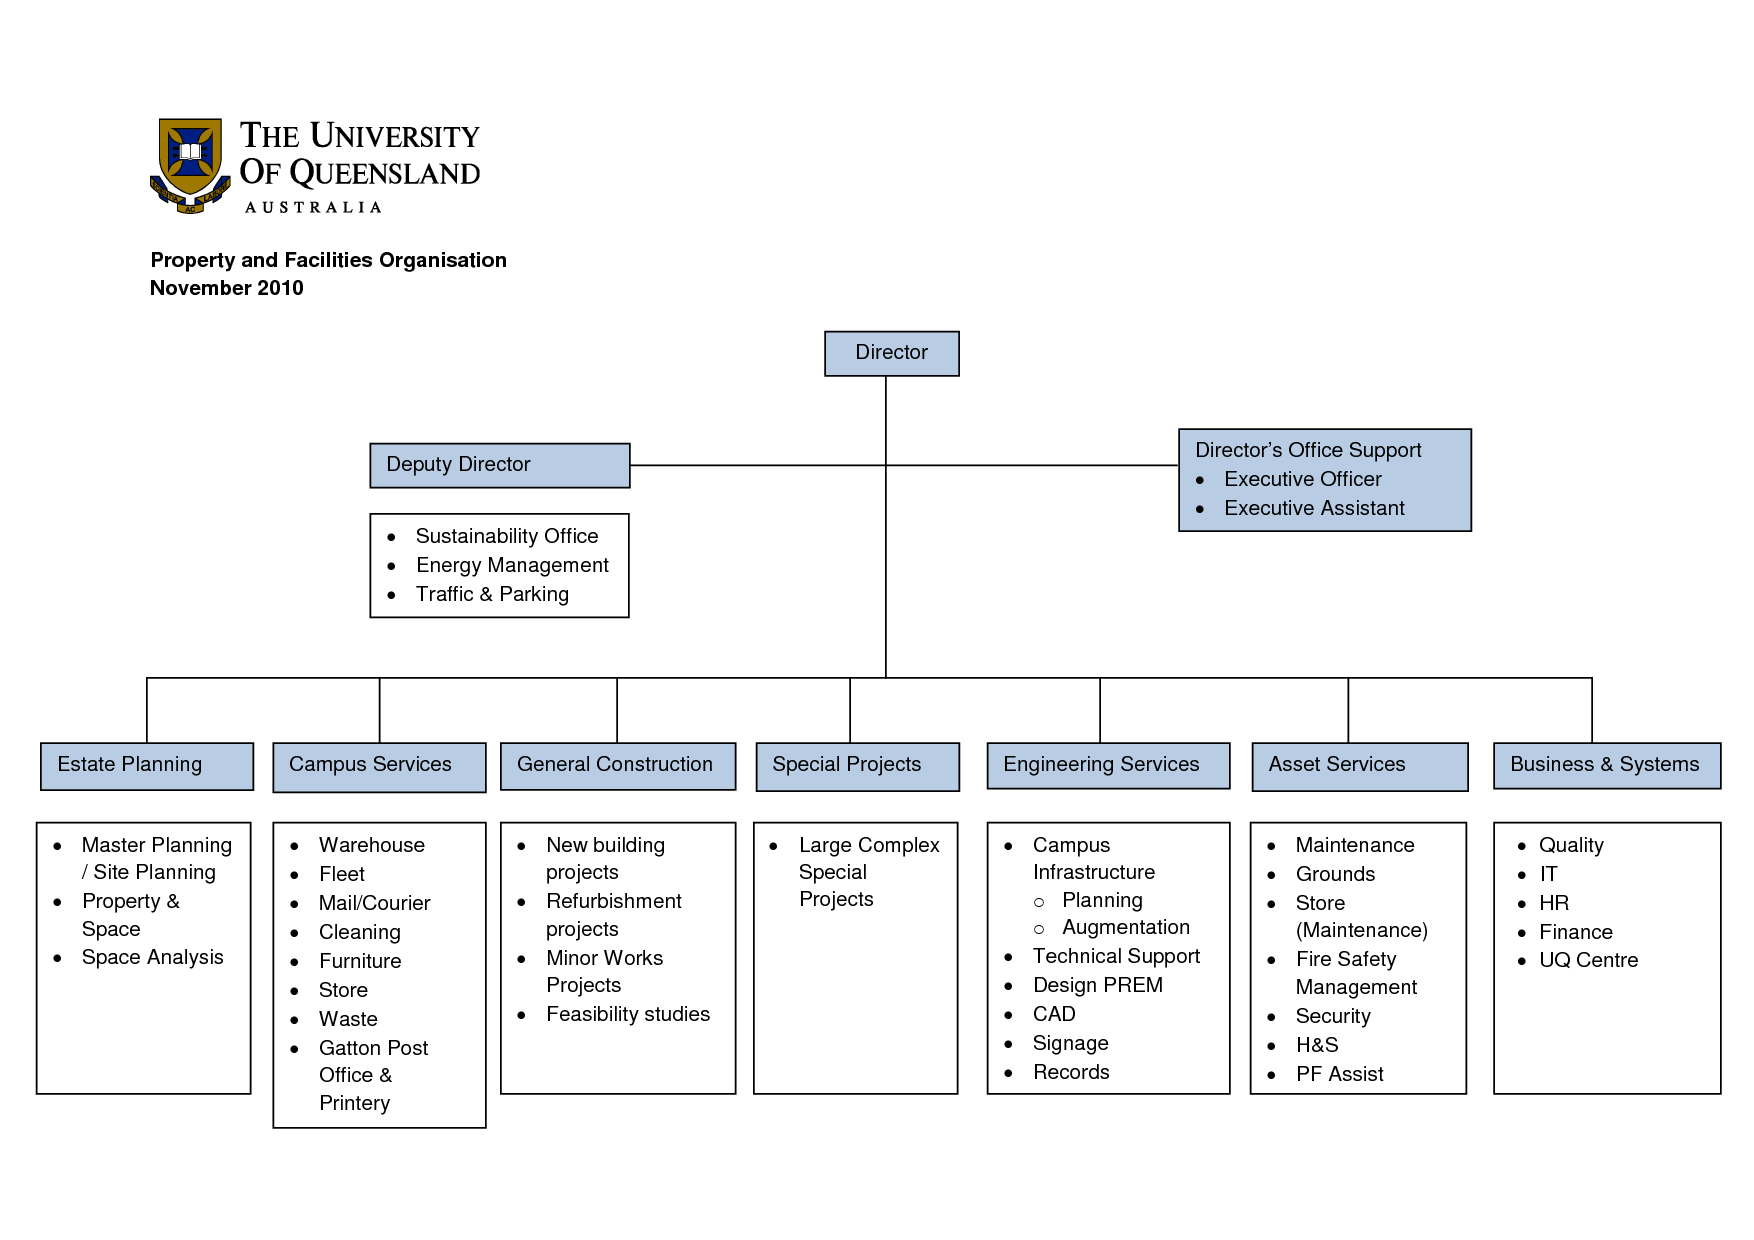 construction organizational chart template | Construction Company ...